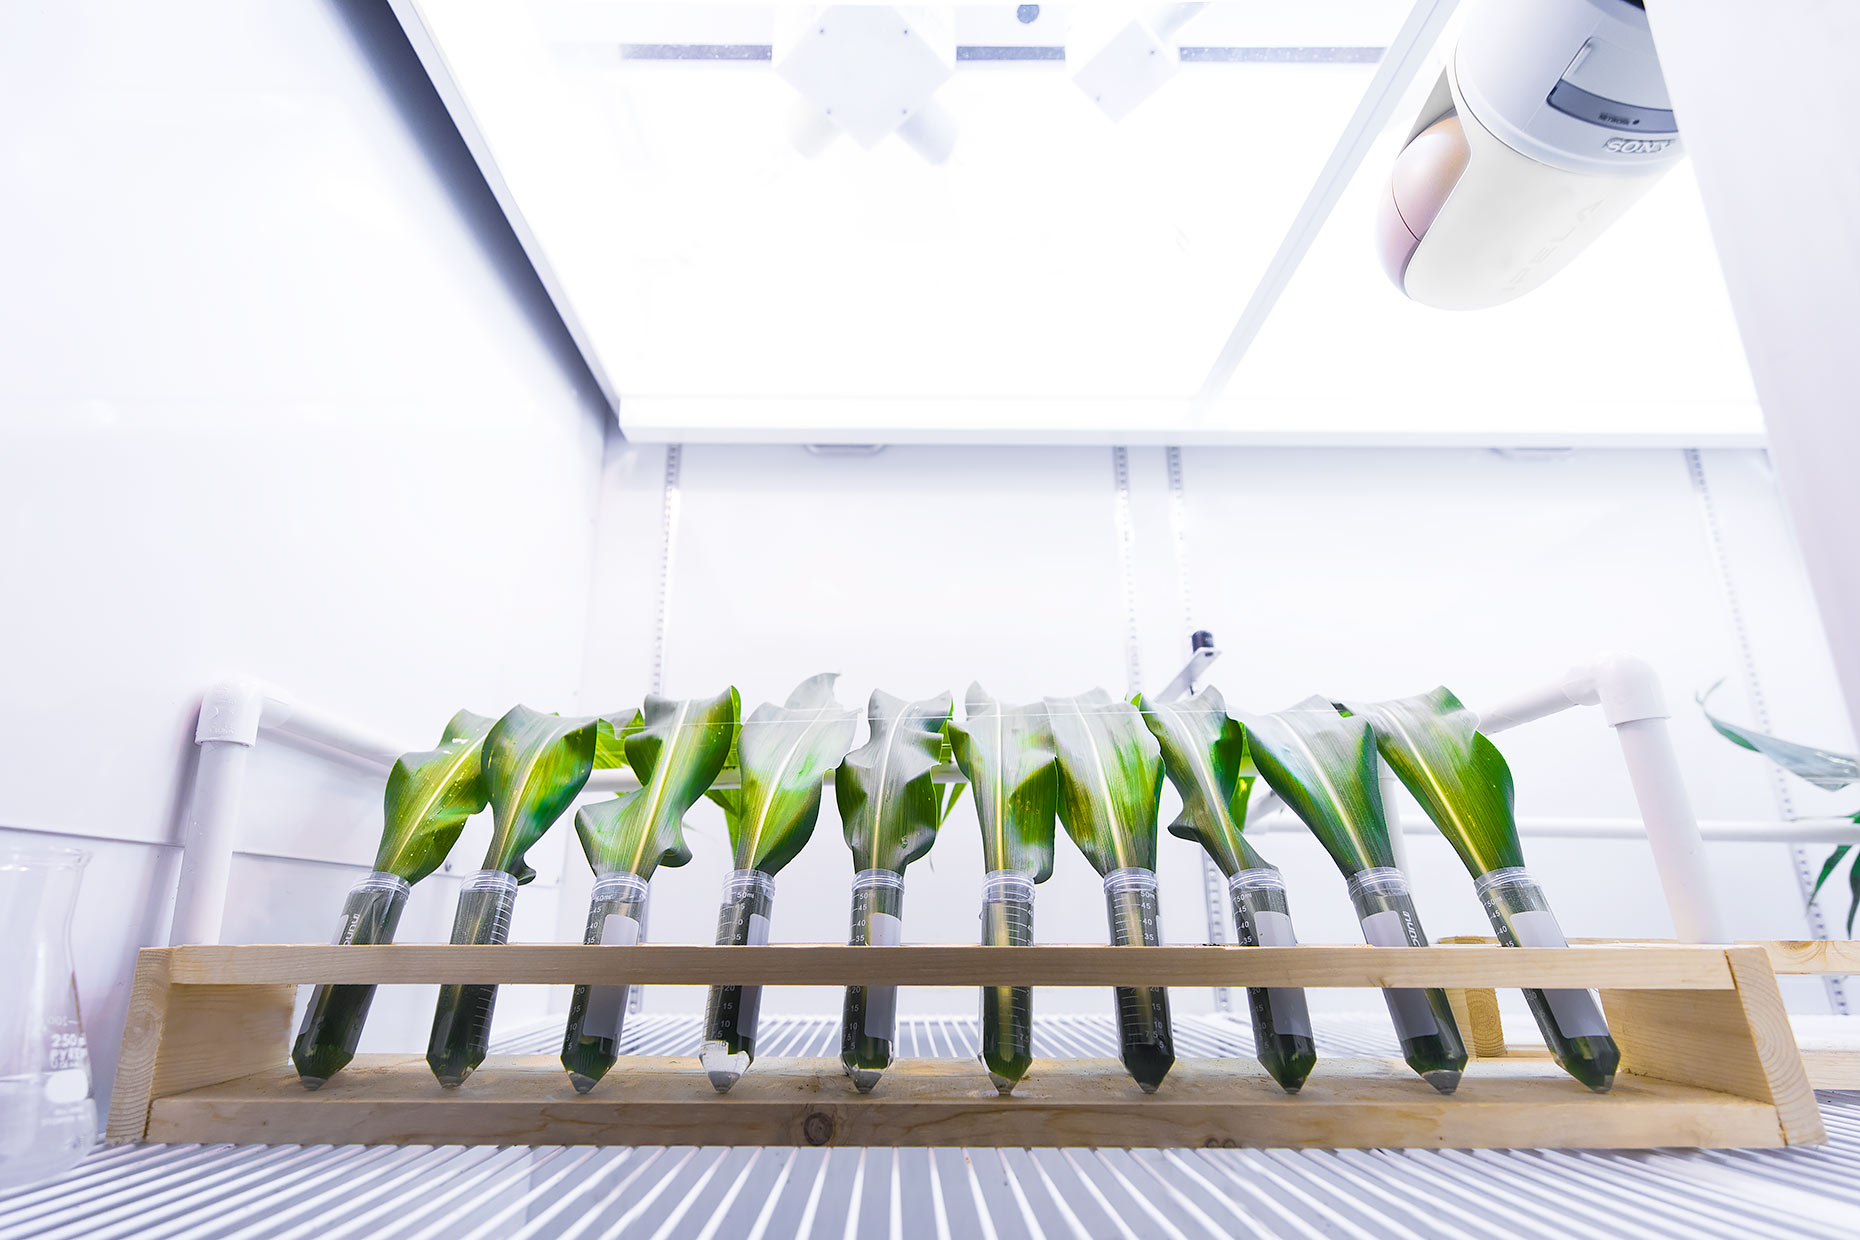 Samples of corn leaves are exposed to light in the laboratory | Scott Gable industrial photographer